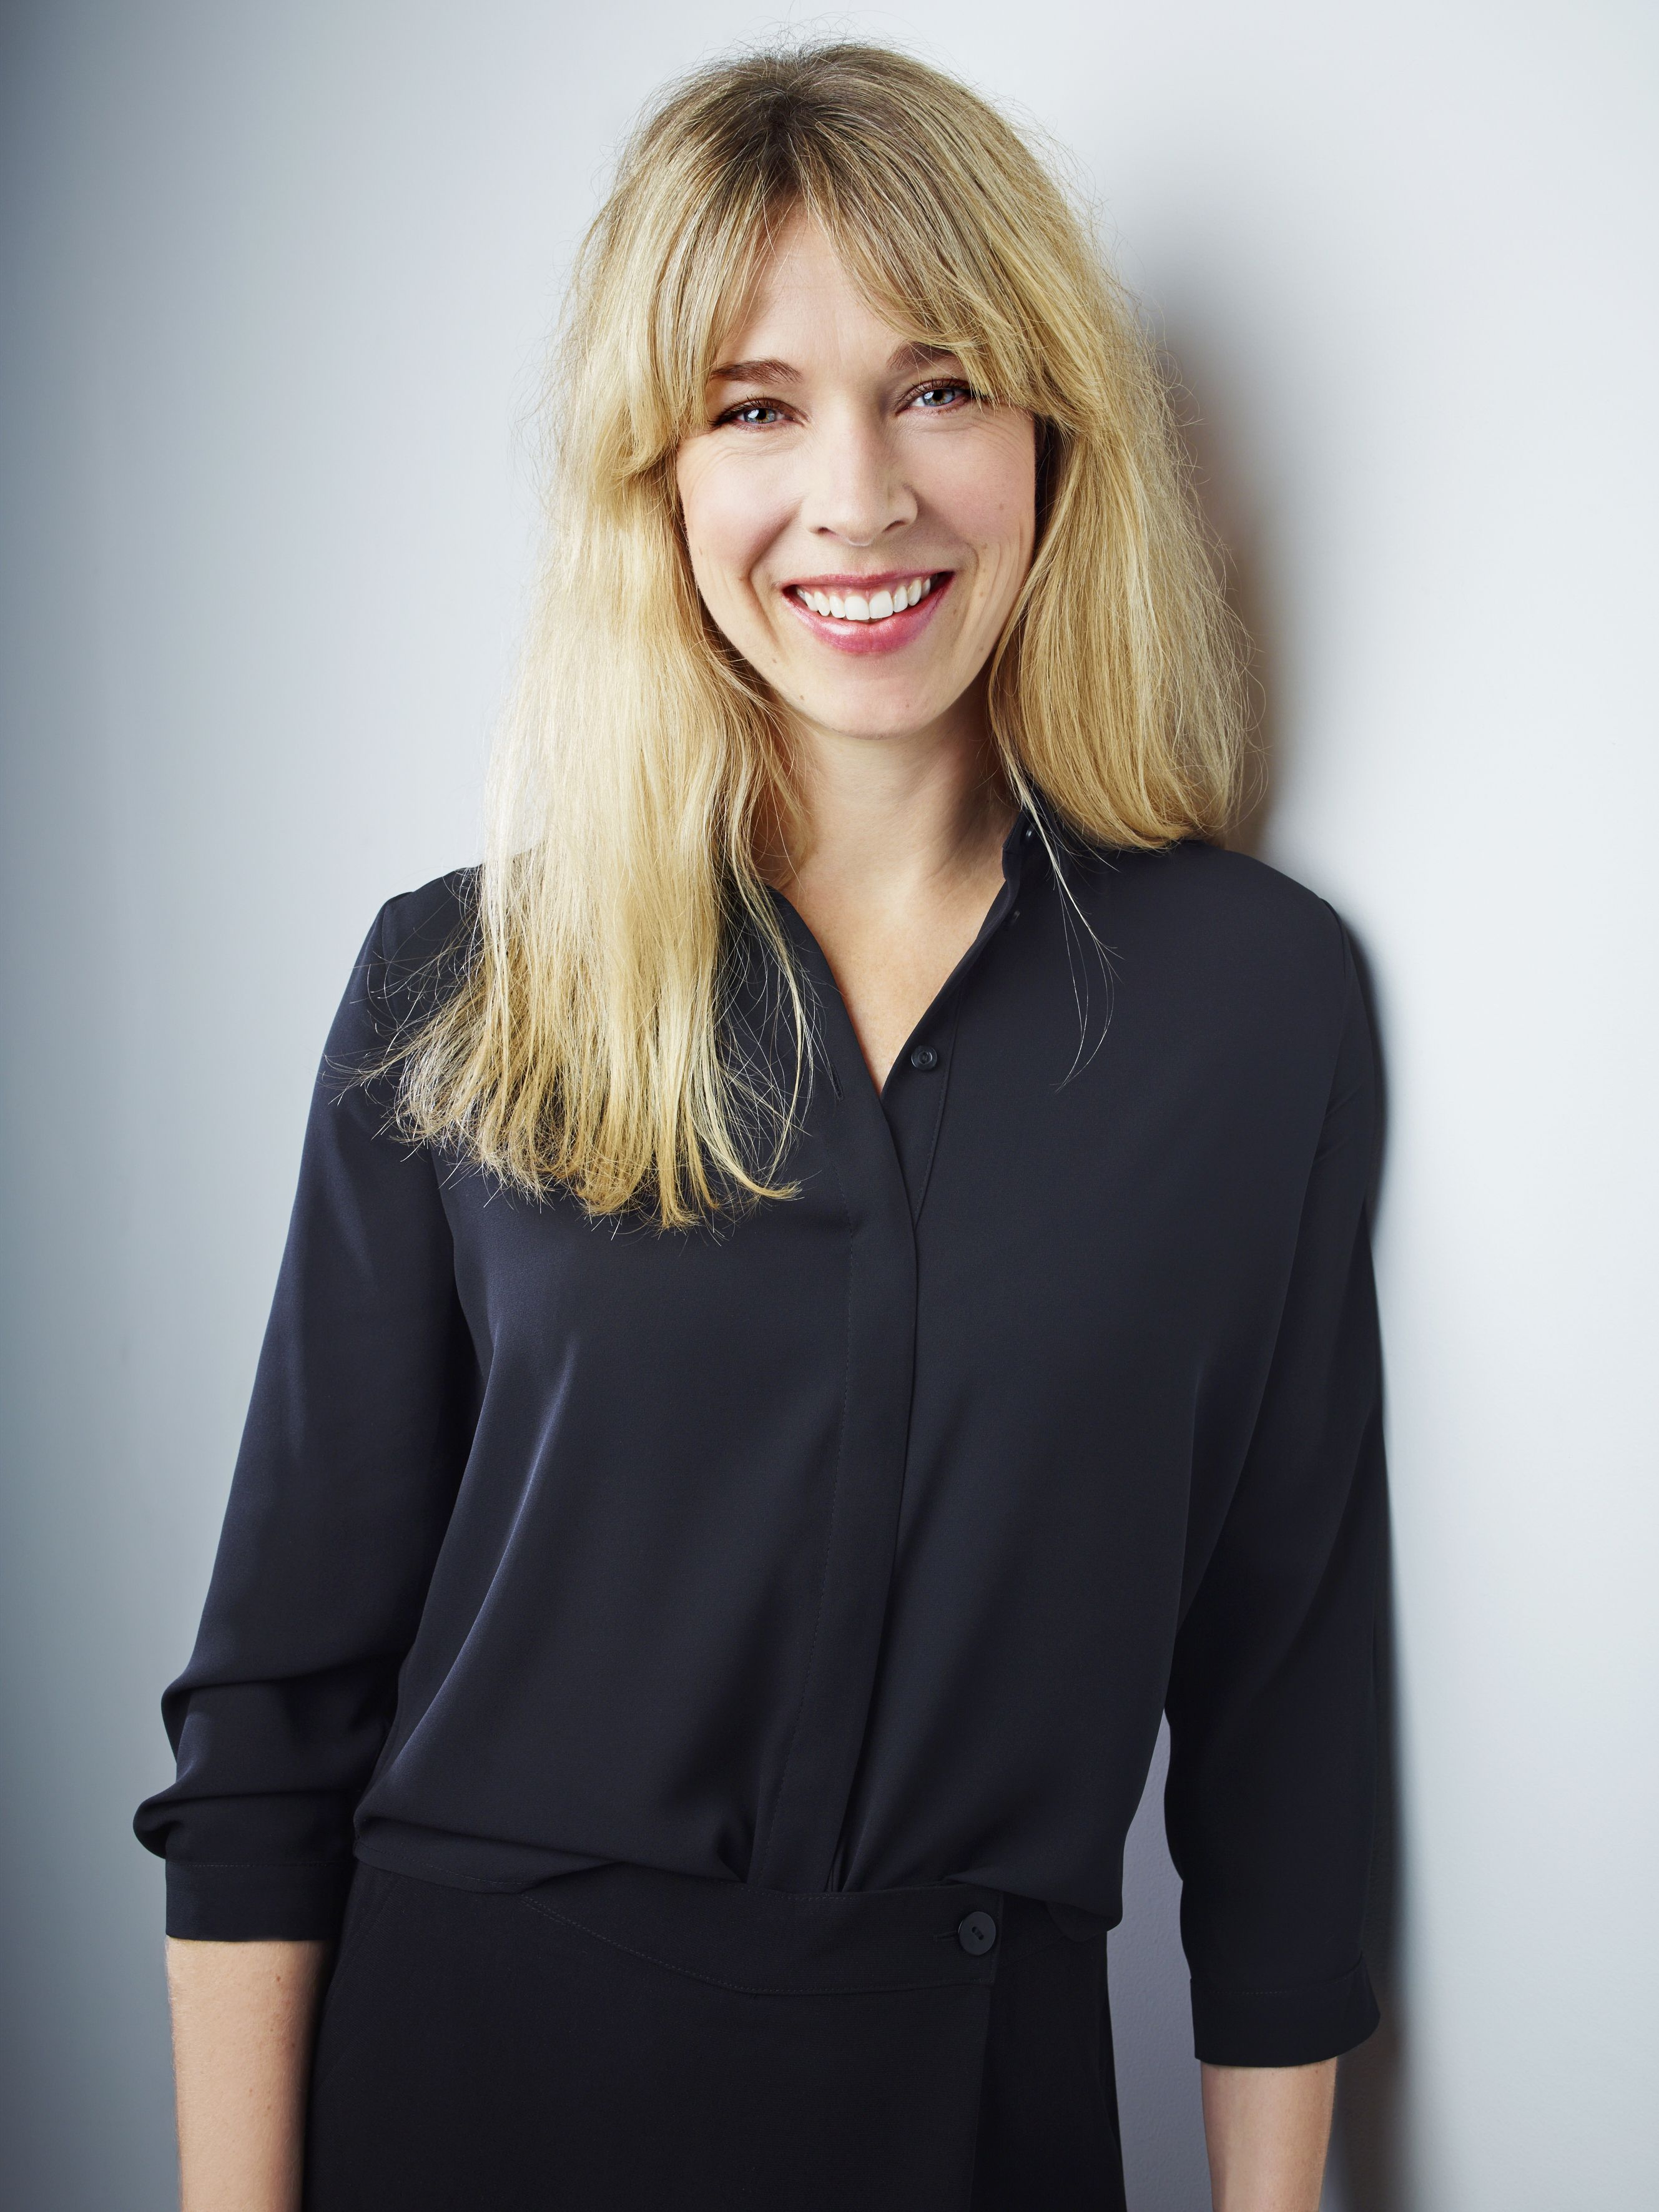 Caroline Carlryd, head of design at Monki